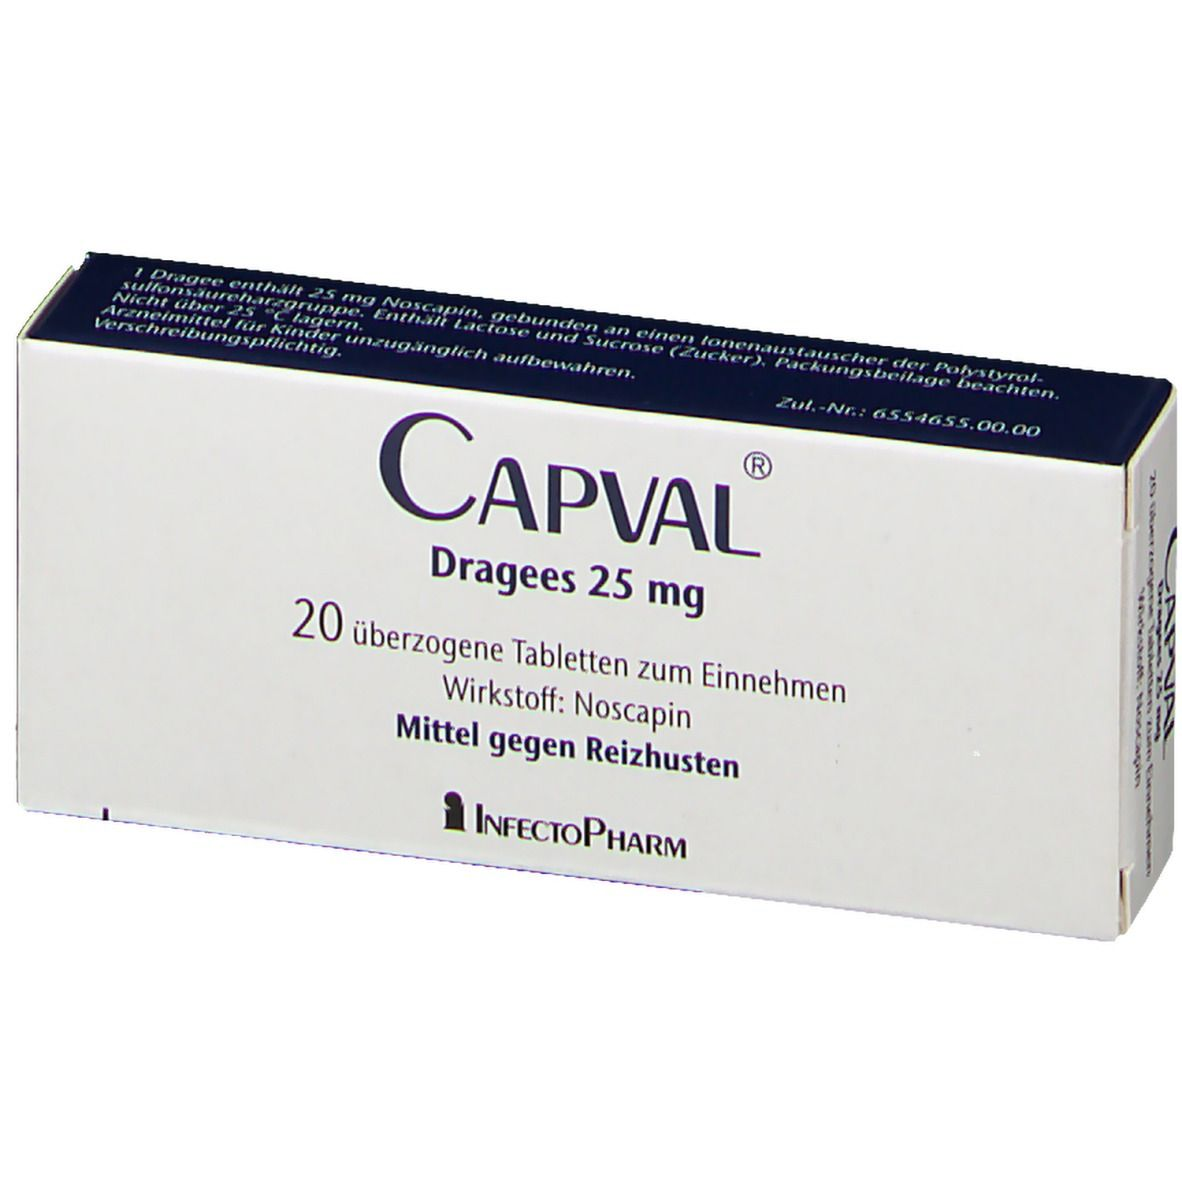 Capval® Dragees